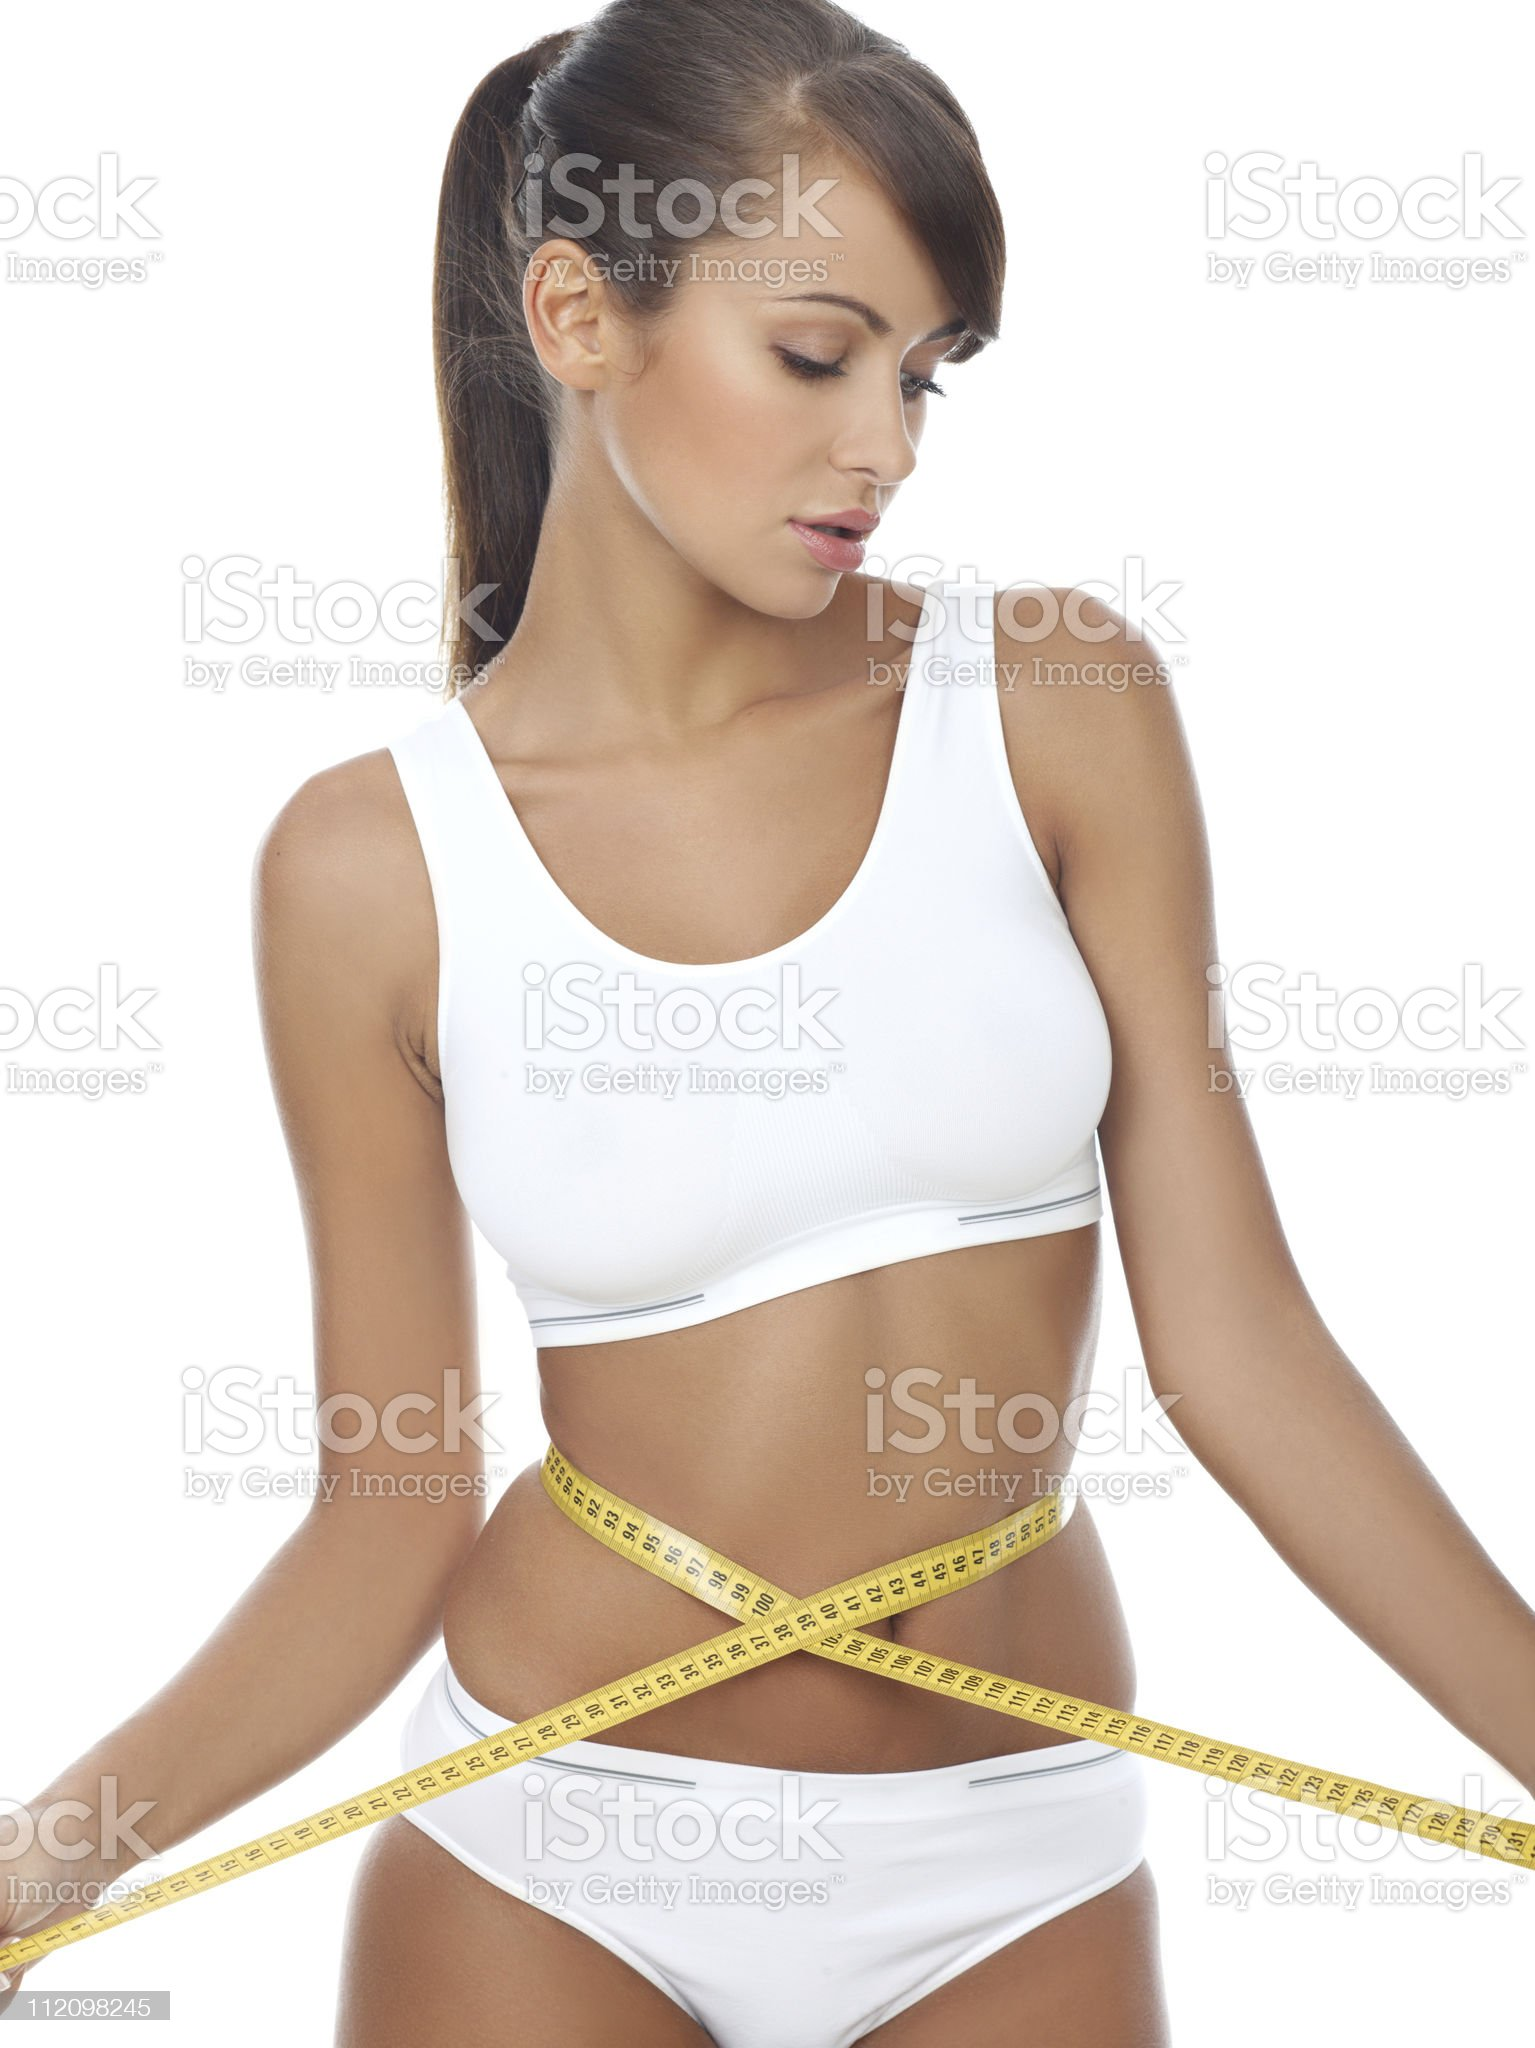 Female with a measuring tape around her tiny waist royalty-free stock photo